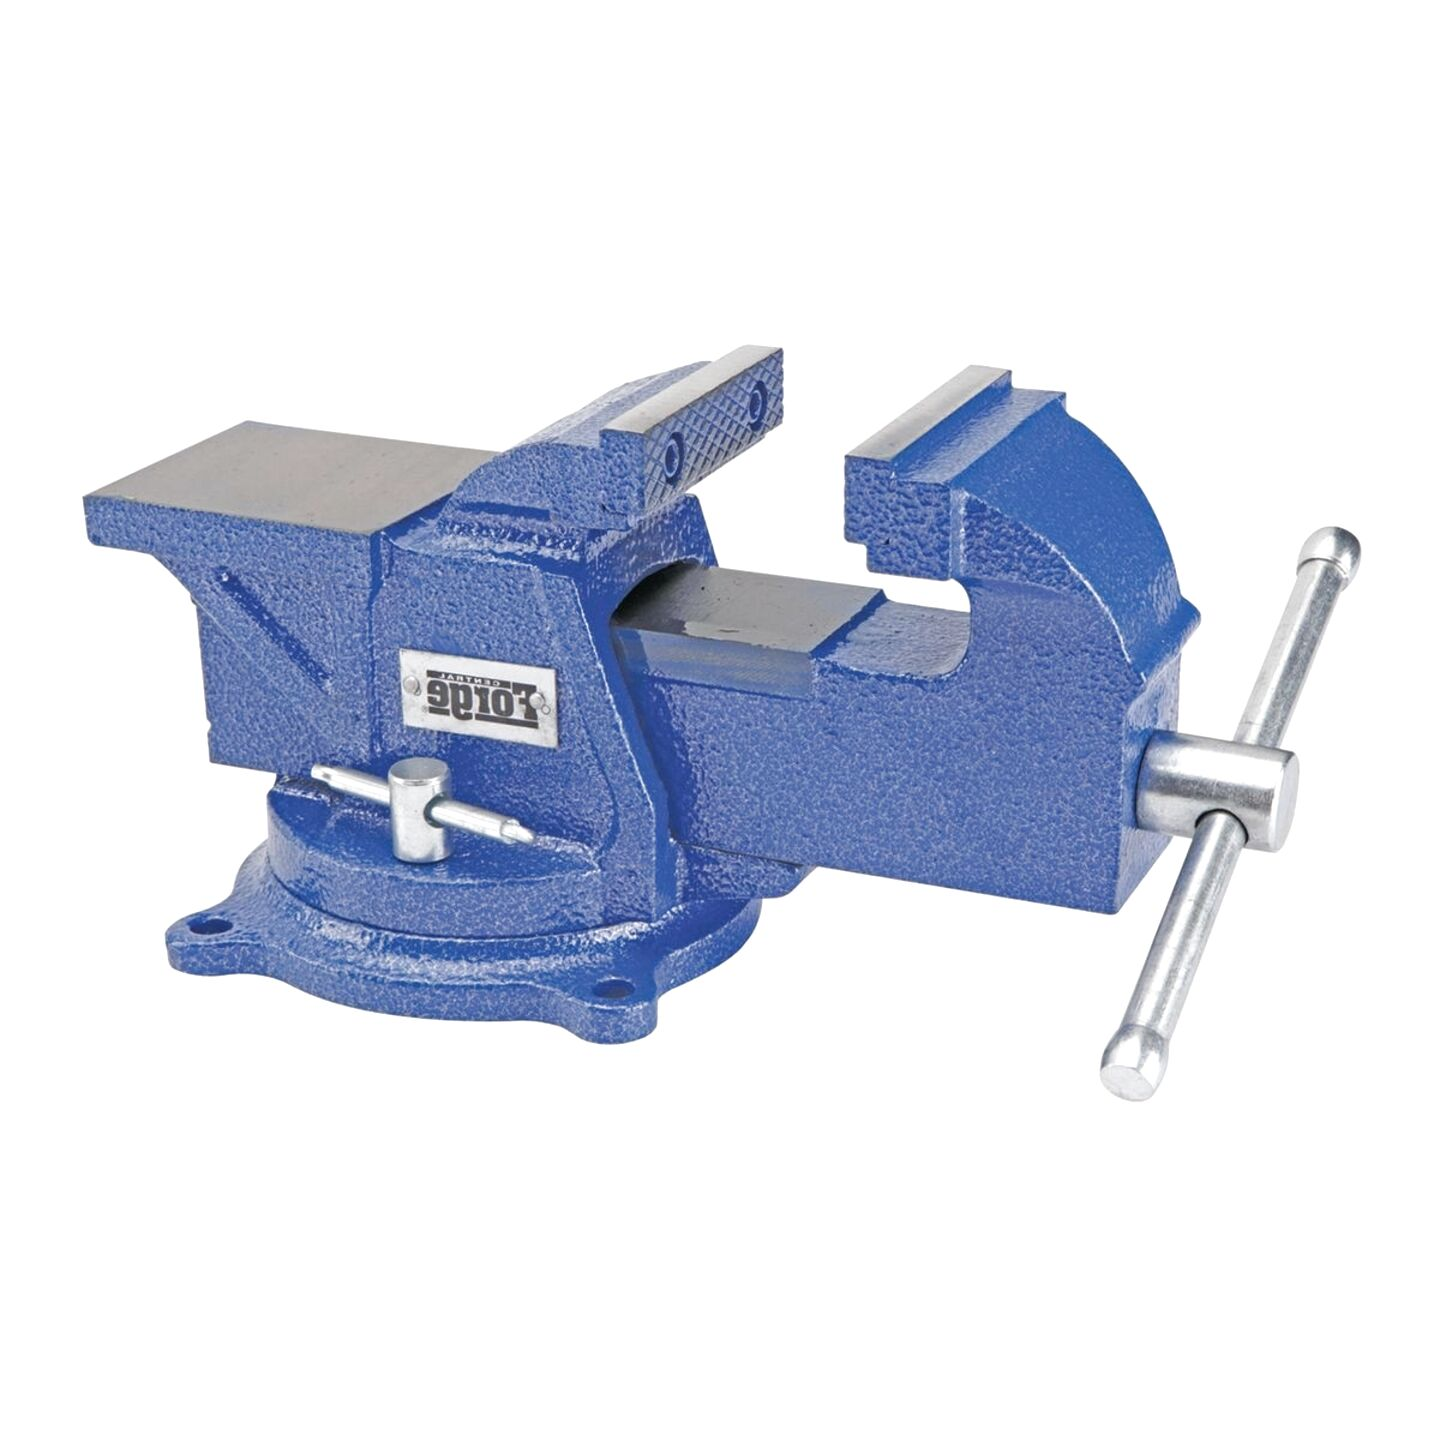 vise for sale